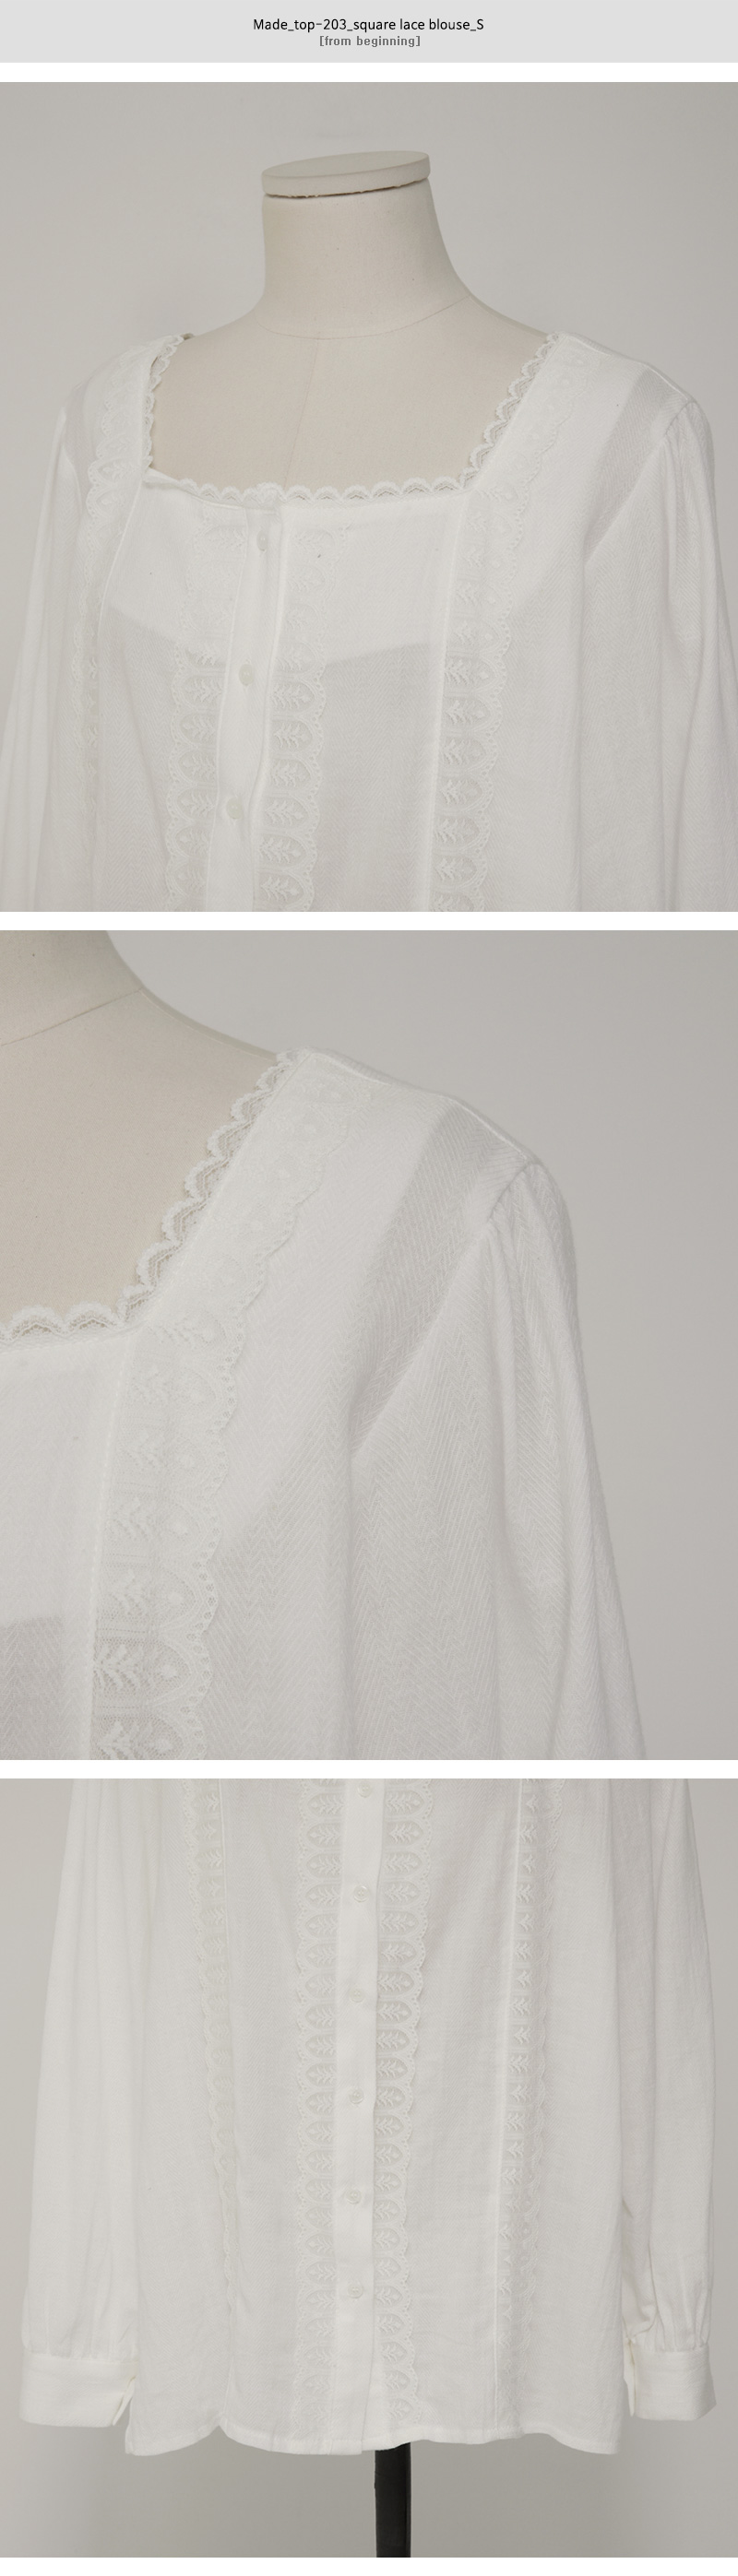 Made_top-203_square lace blouse_S